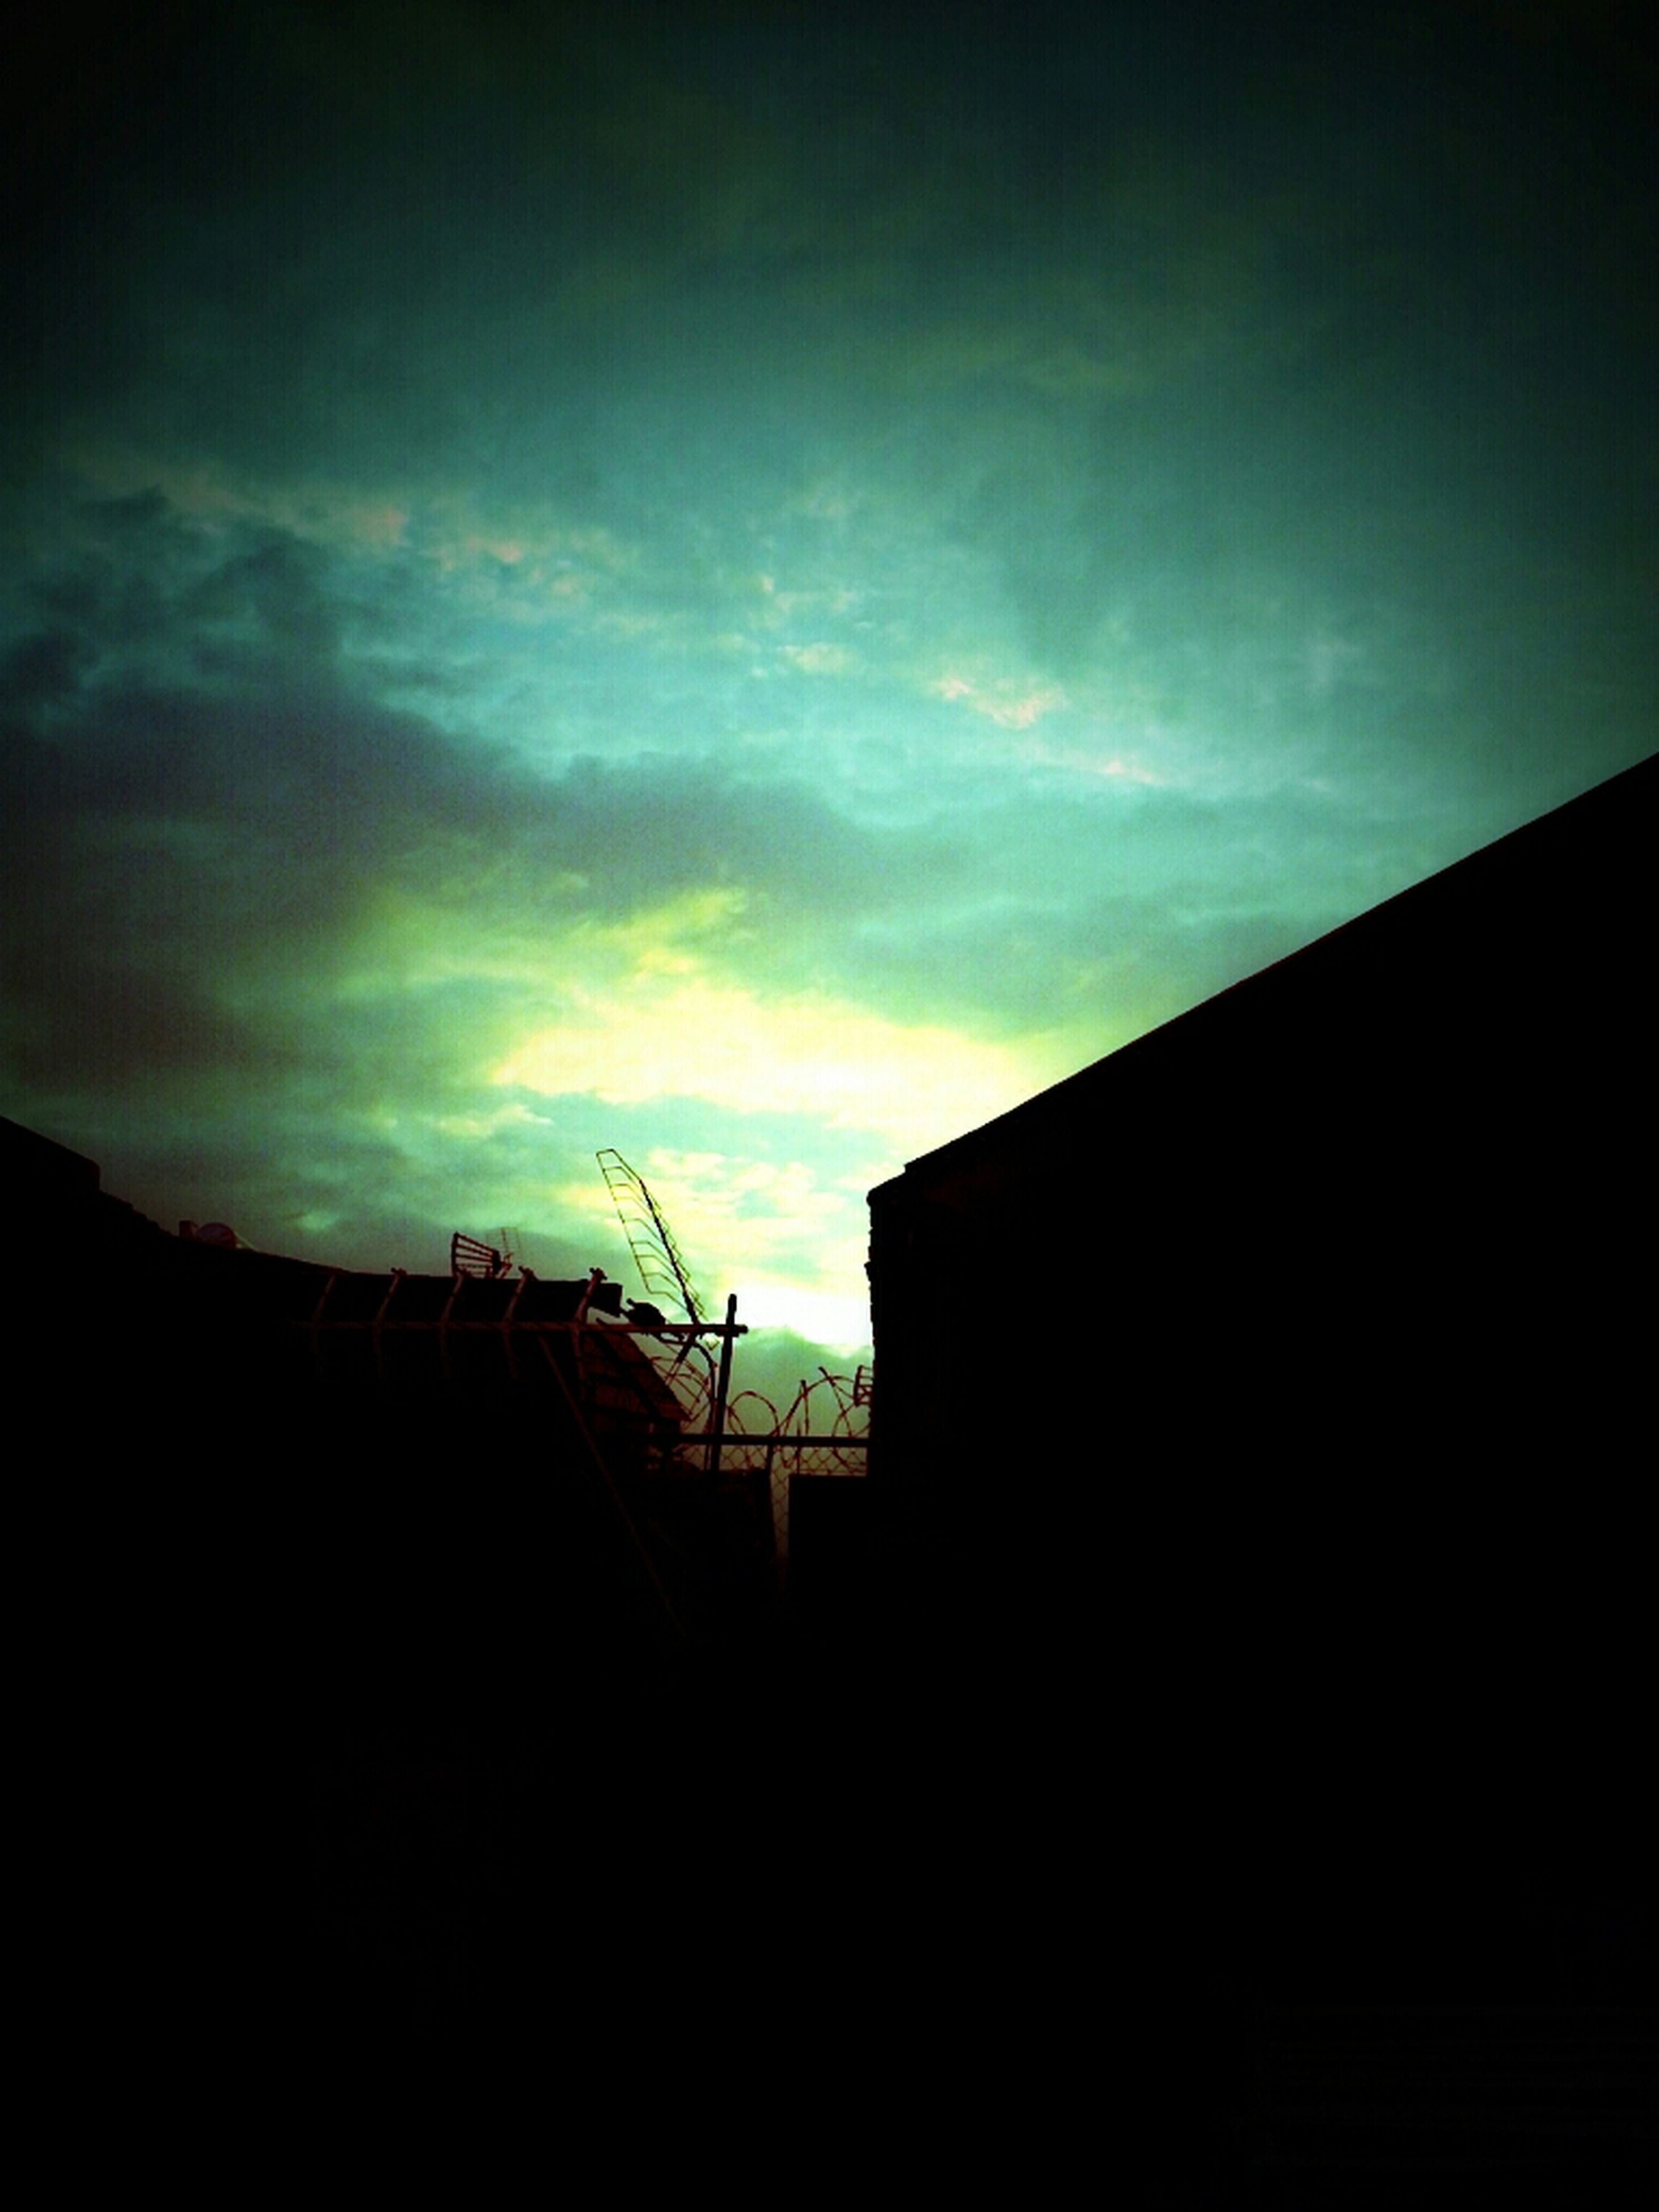 building exterior, architecture, built structure, sky, silhouette, house, sunset, low angle view, cloud - sky, residential structure, cloud, dusk, building, residential building, dark, outdoors, cloudy, no people, nature, copy space